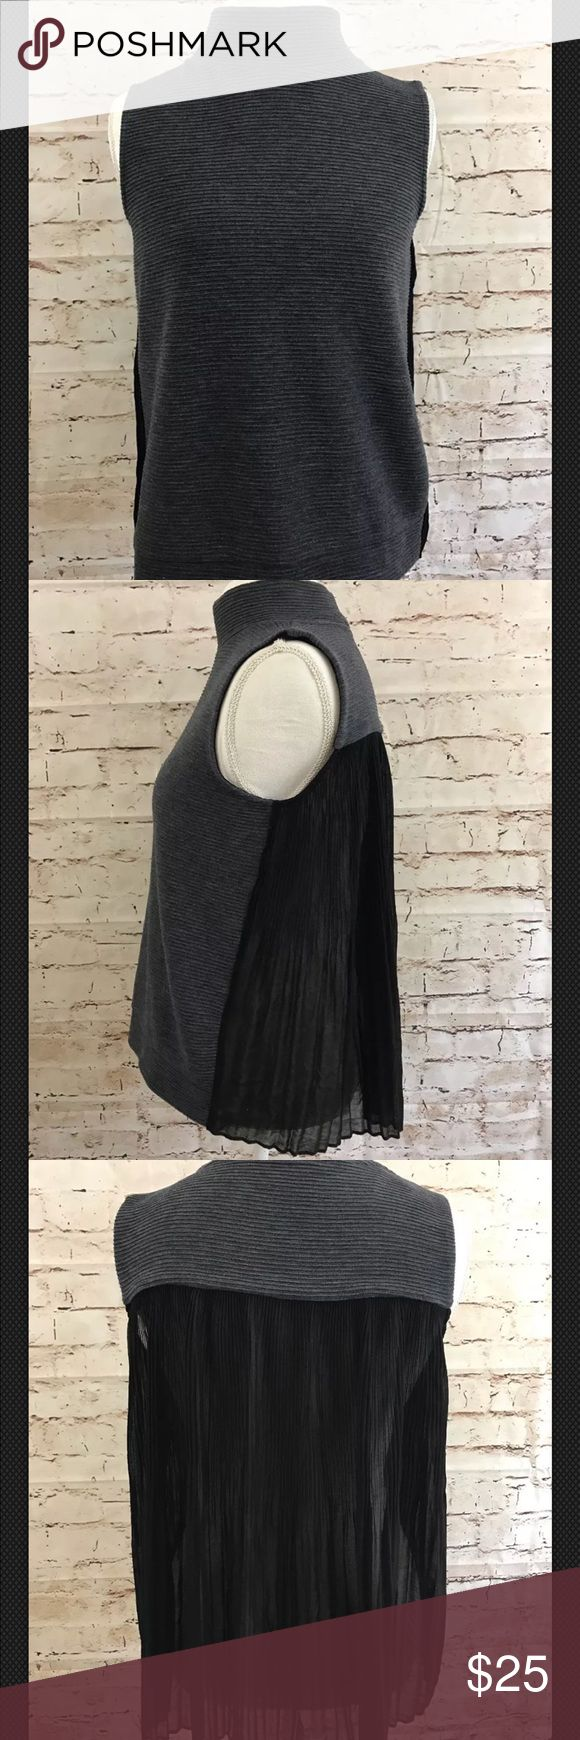 French Connection Gray Ribbed Sheer Back Knit Top Bust 19 inches laying flat Length 22.5 inches   Smoke & Pet Free Home  Thank you for looking at this item. Be sure to check out my other listings, will be adding more items this week. French Connection Tops Blouses